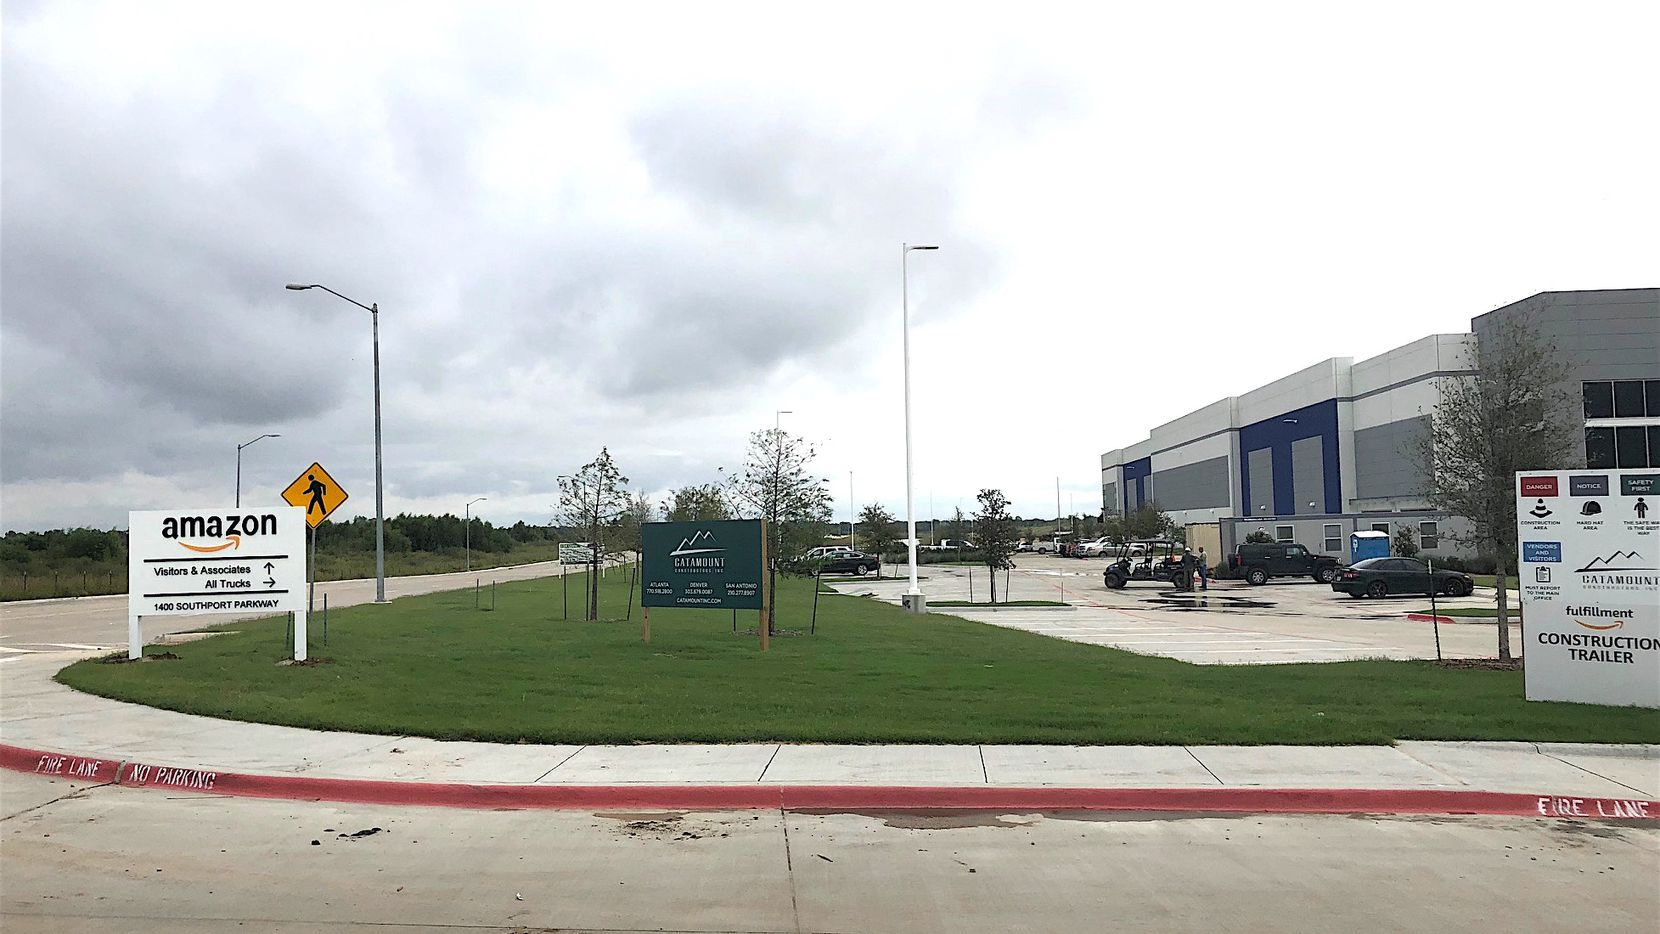 Amazon has leased more than 1 million square feet near I-45 in Wilmer for another huge shipping hub.